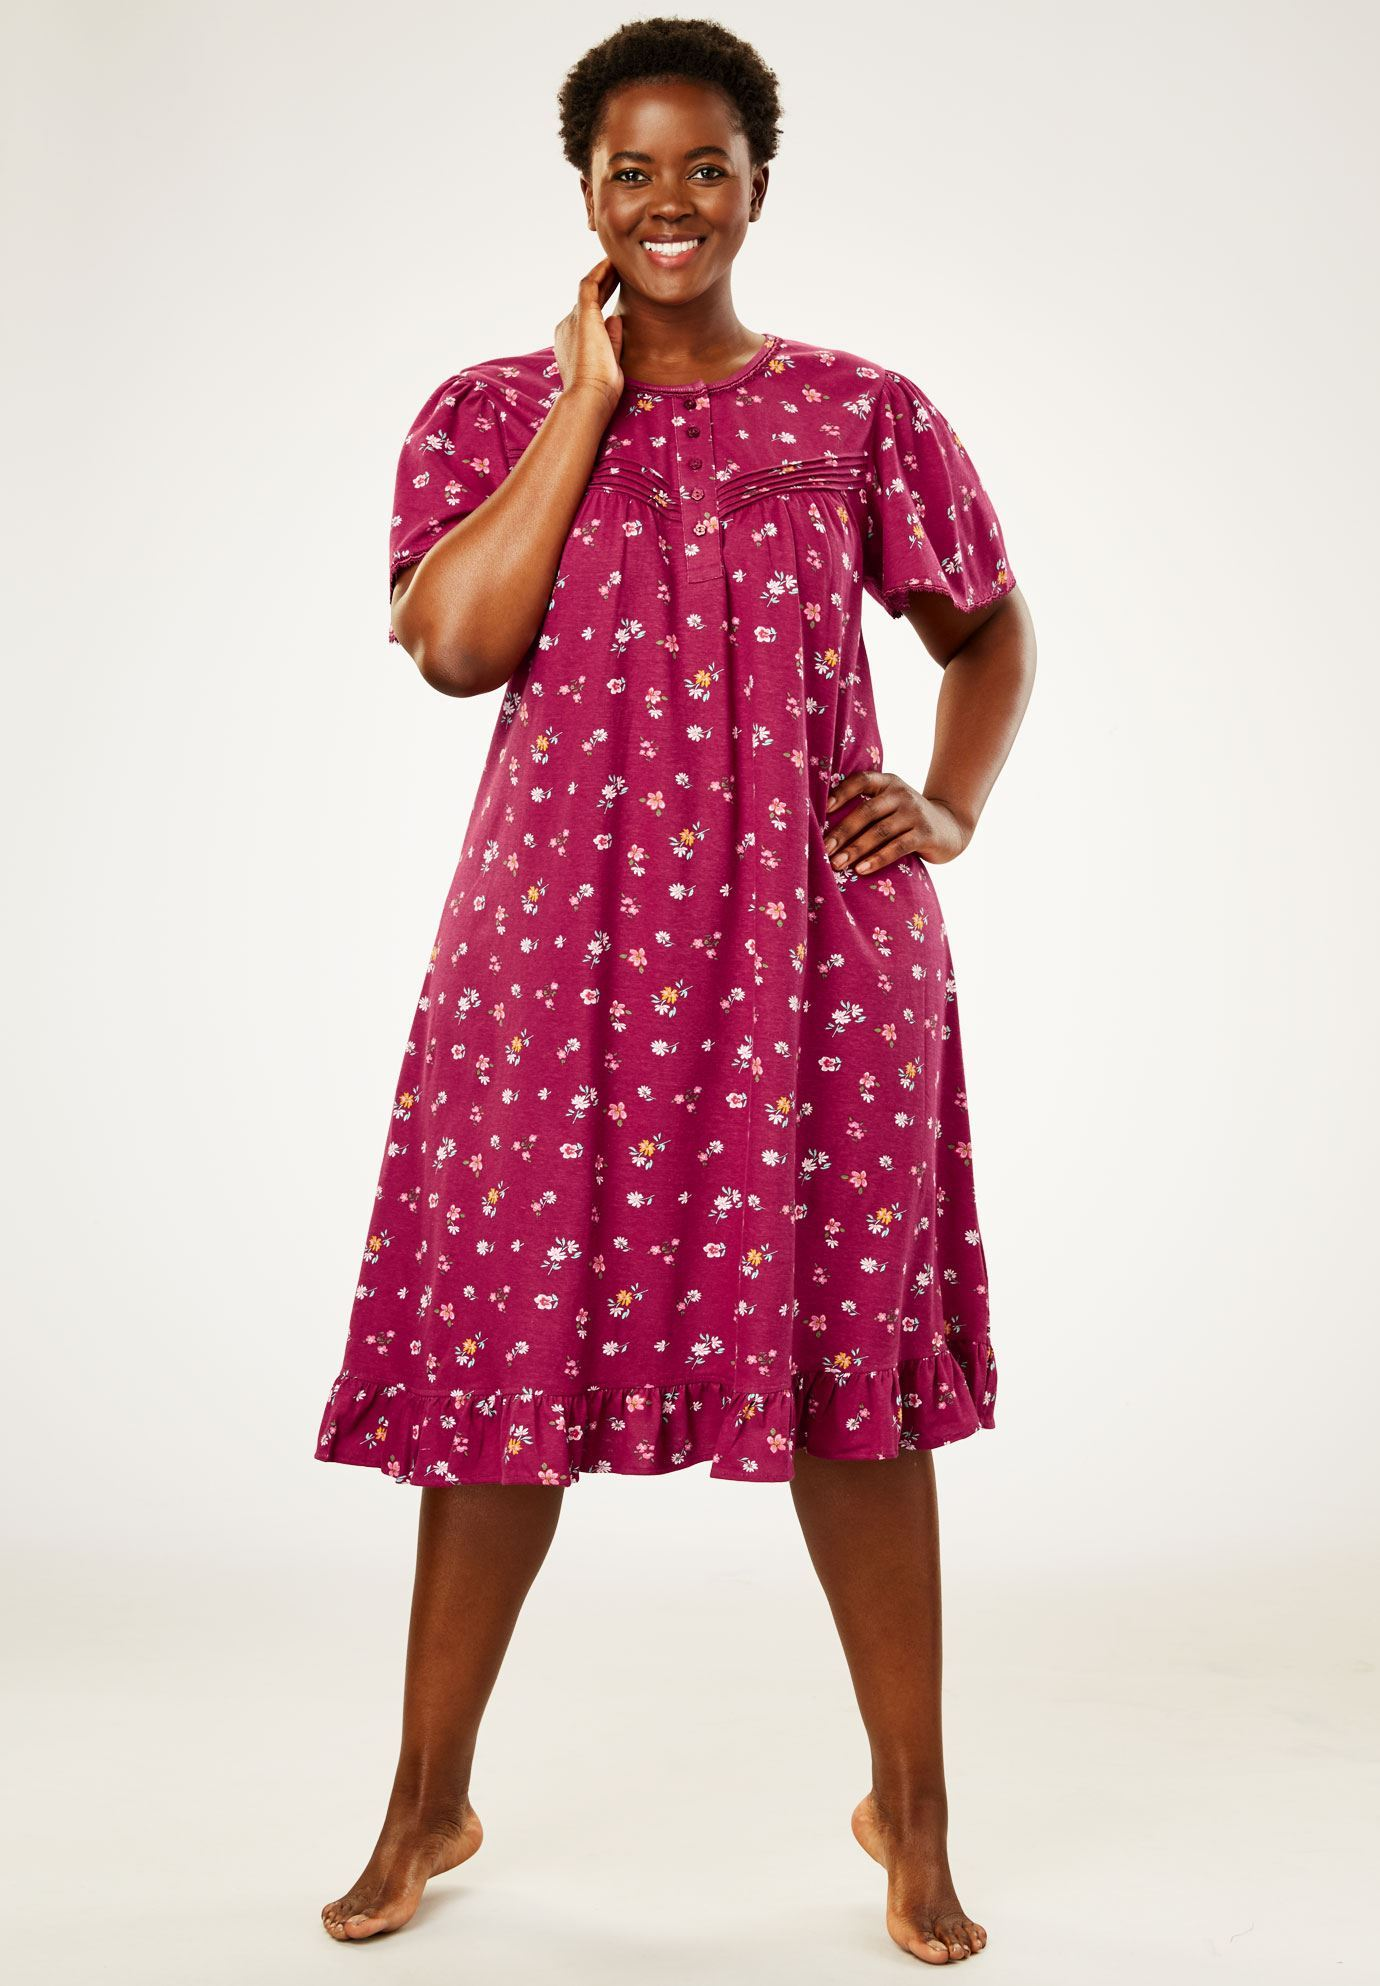 Cotton Print Nightgown By Dreams Co Plus Size Sleep Gowns